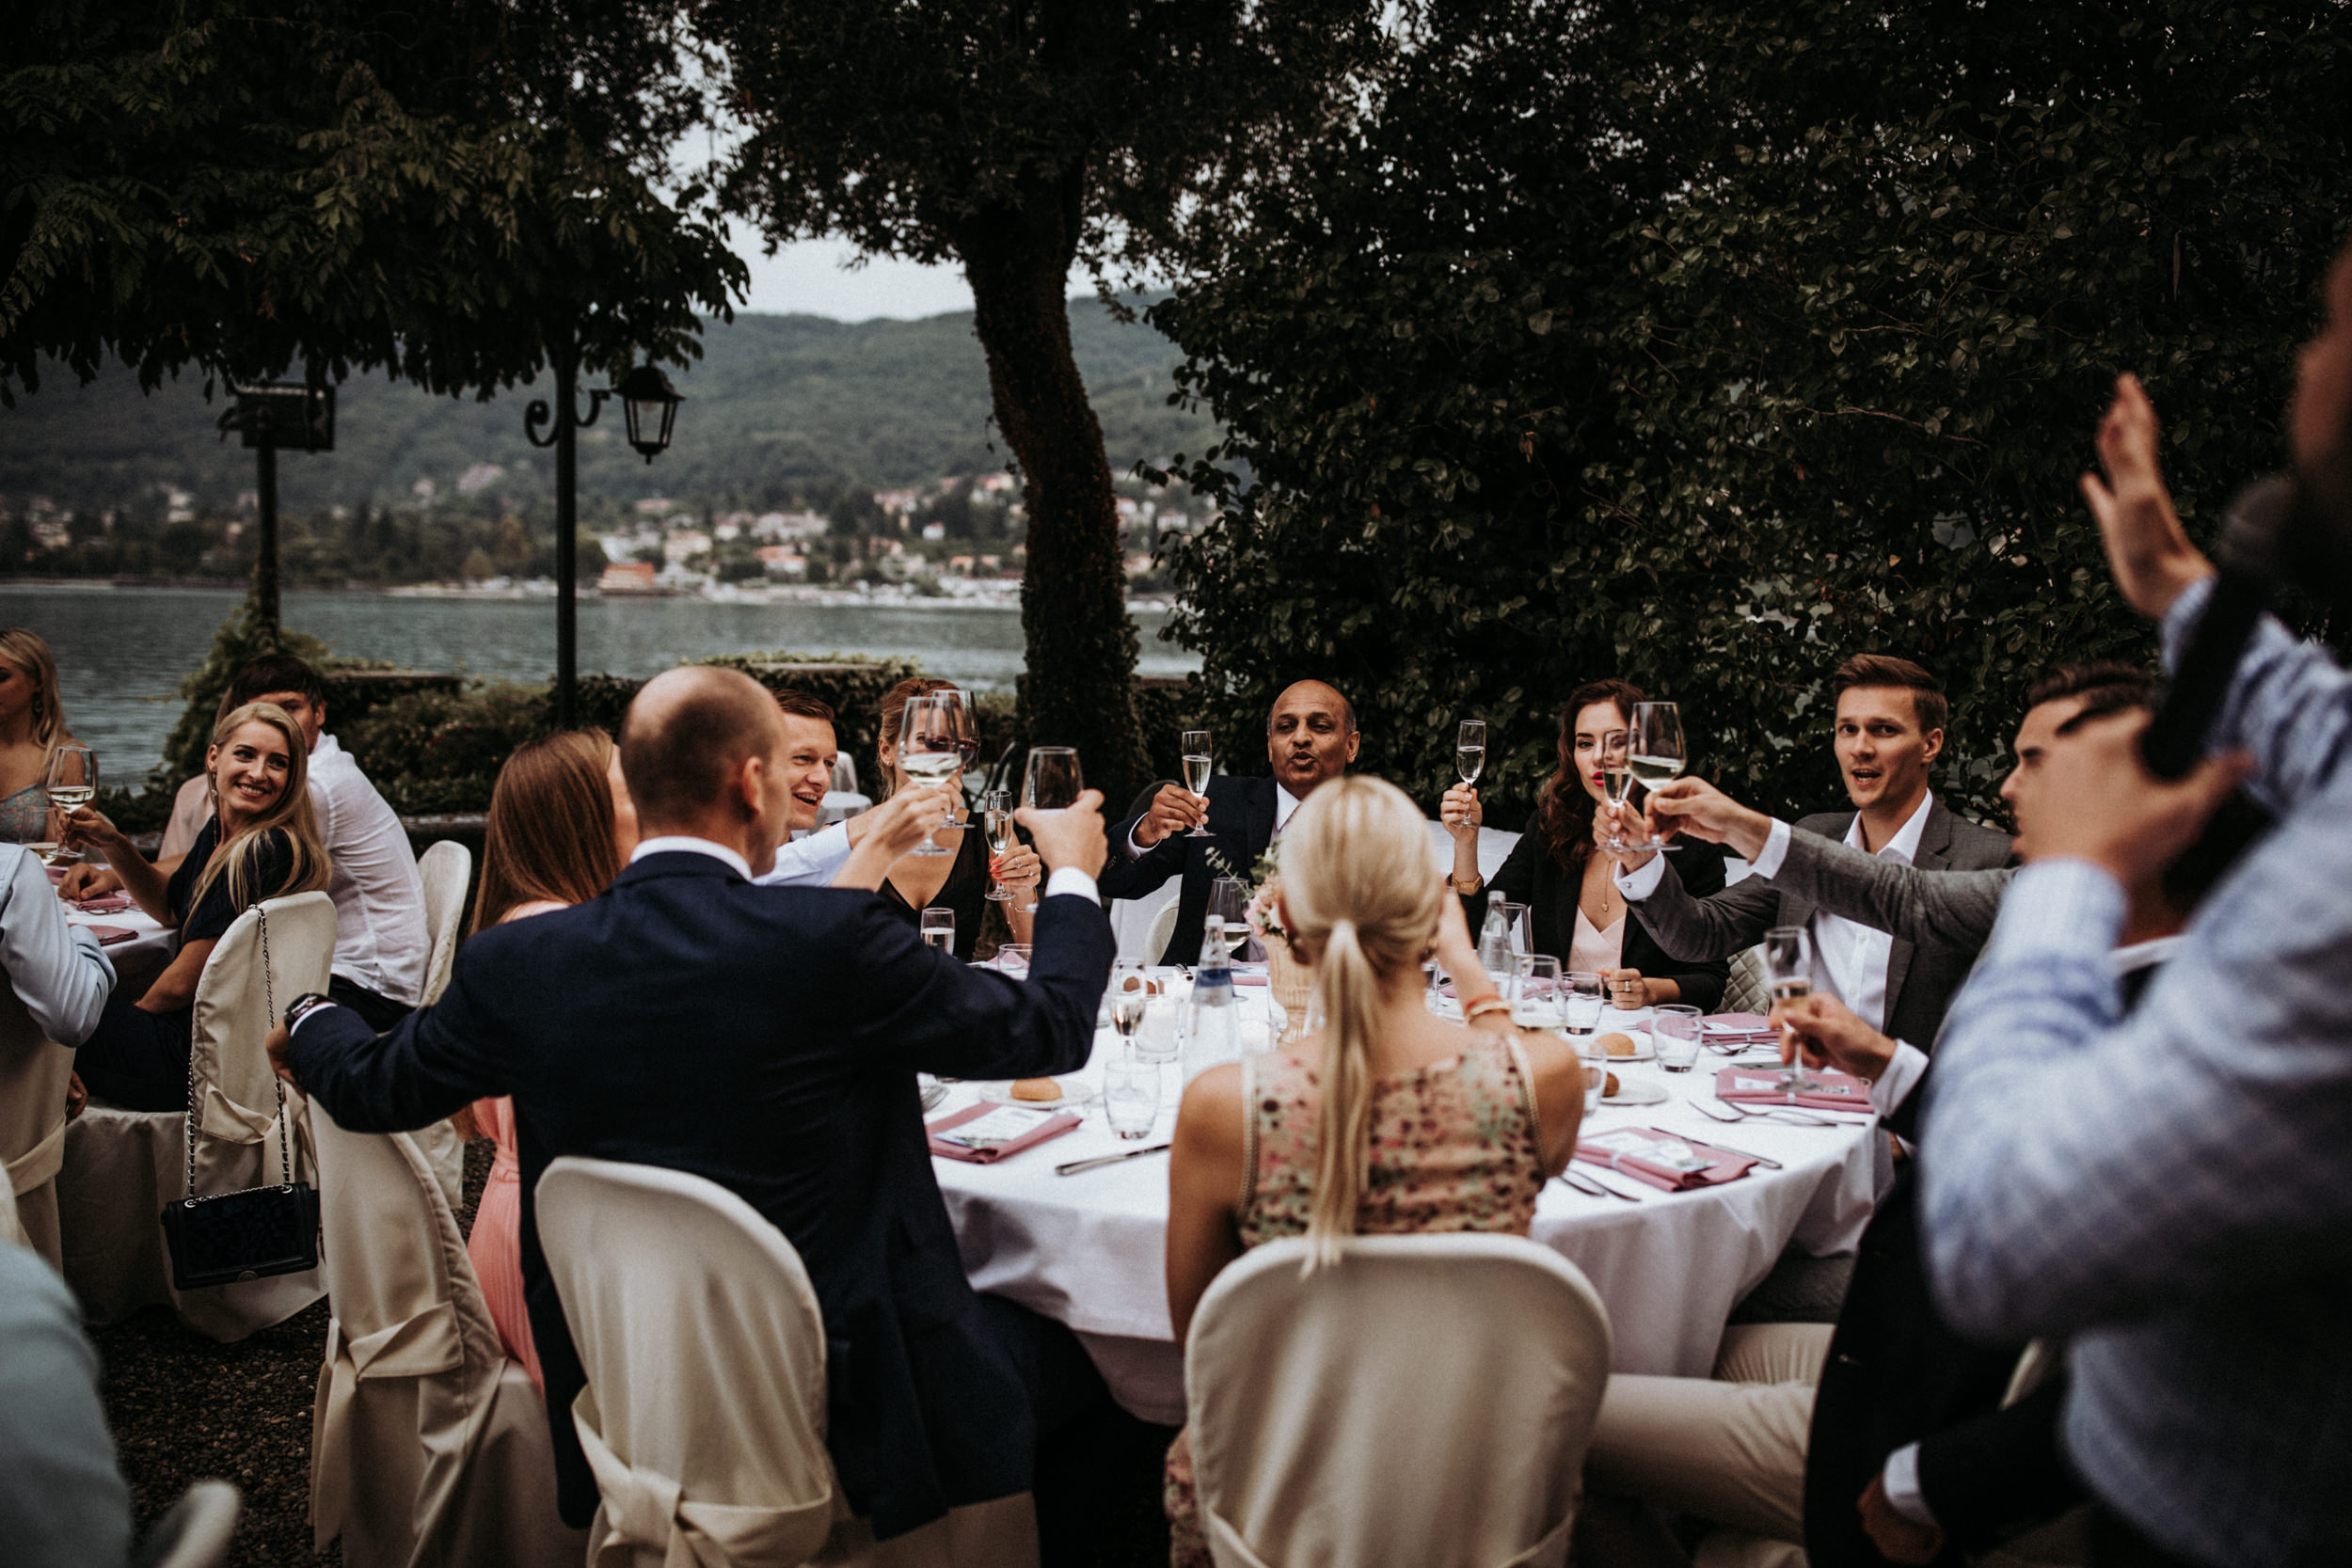 dm_photography_Lago Maggiore_Wed_280